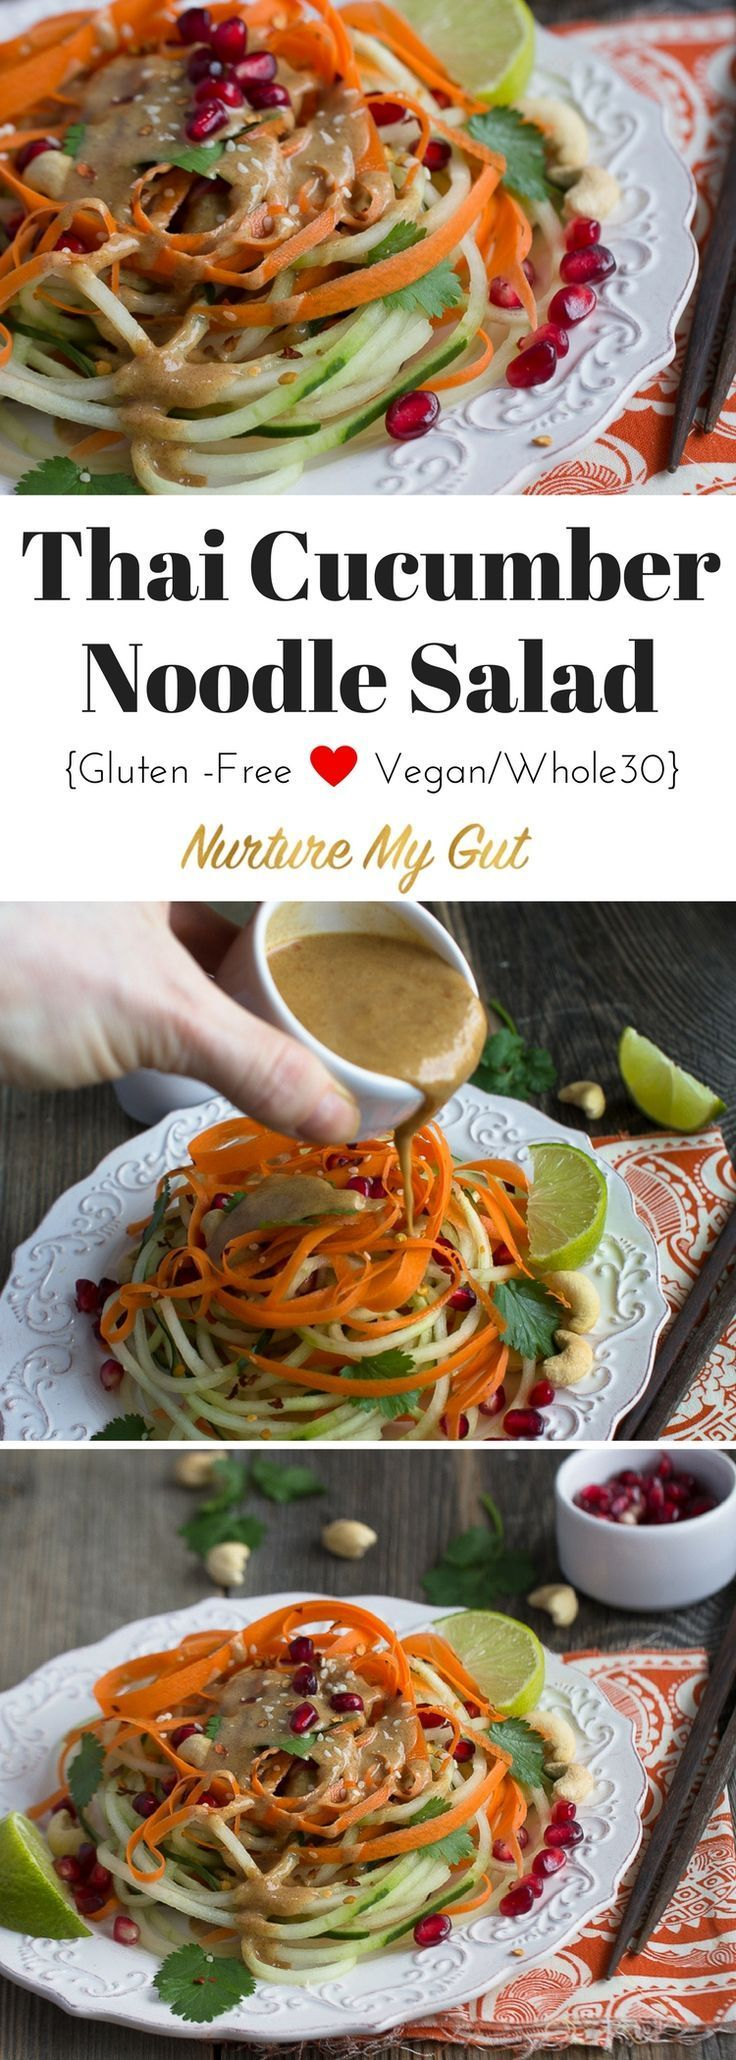 Whole Foods Sesame Noodles With Cucumber Calories